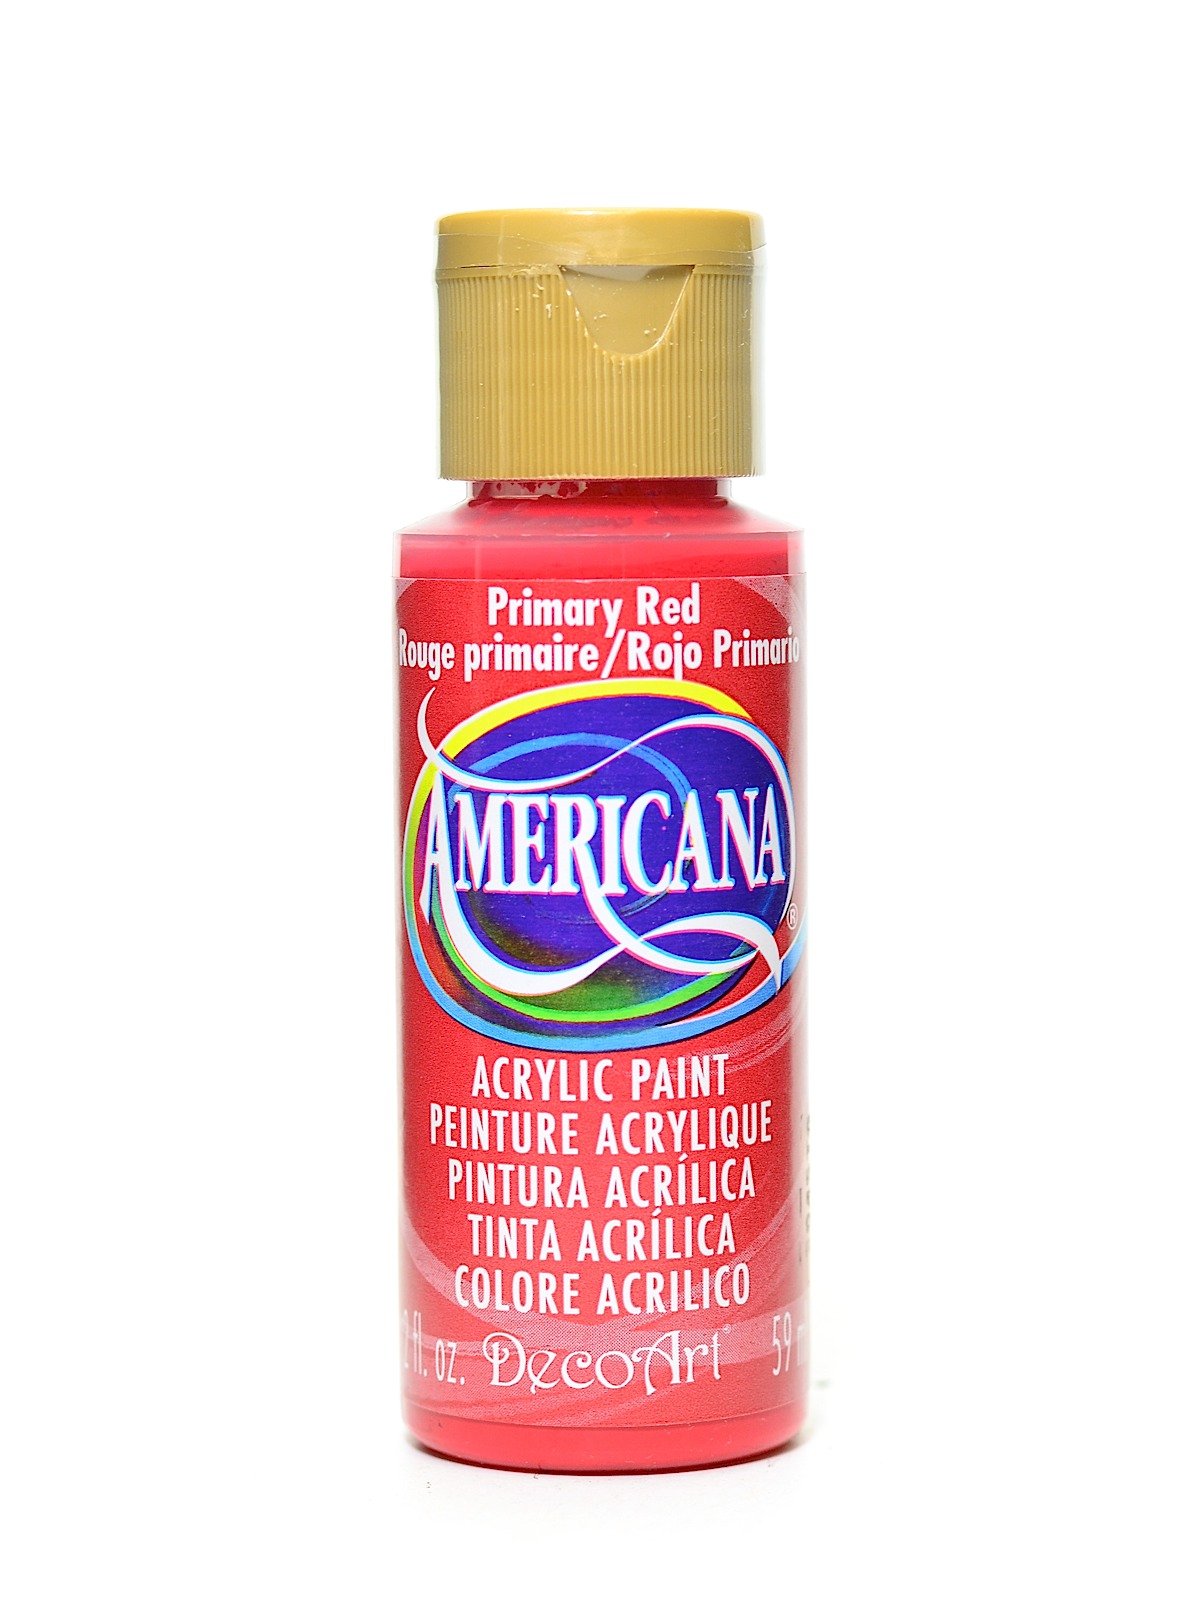 Americana Acrylic Paints Primary Red 2 Oz Pack Of 8